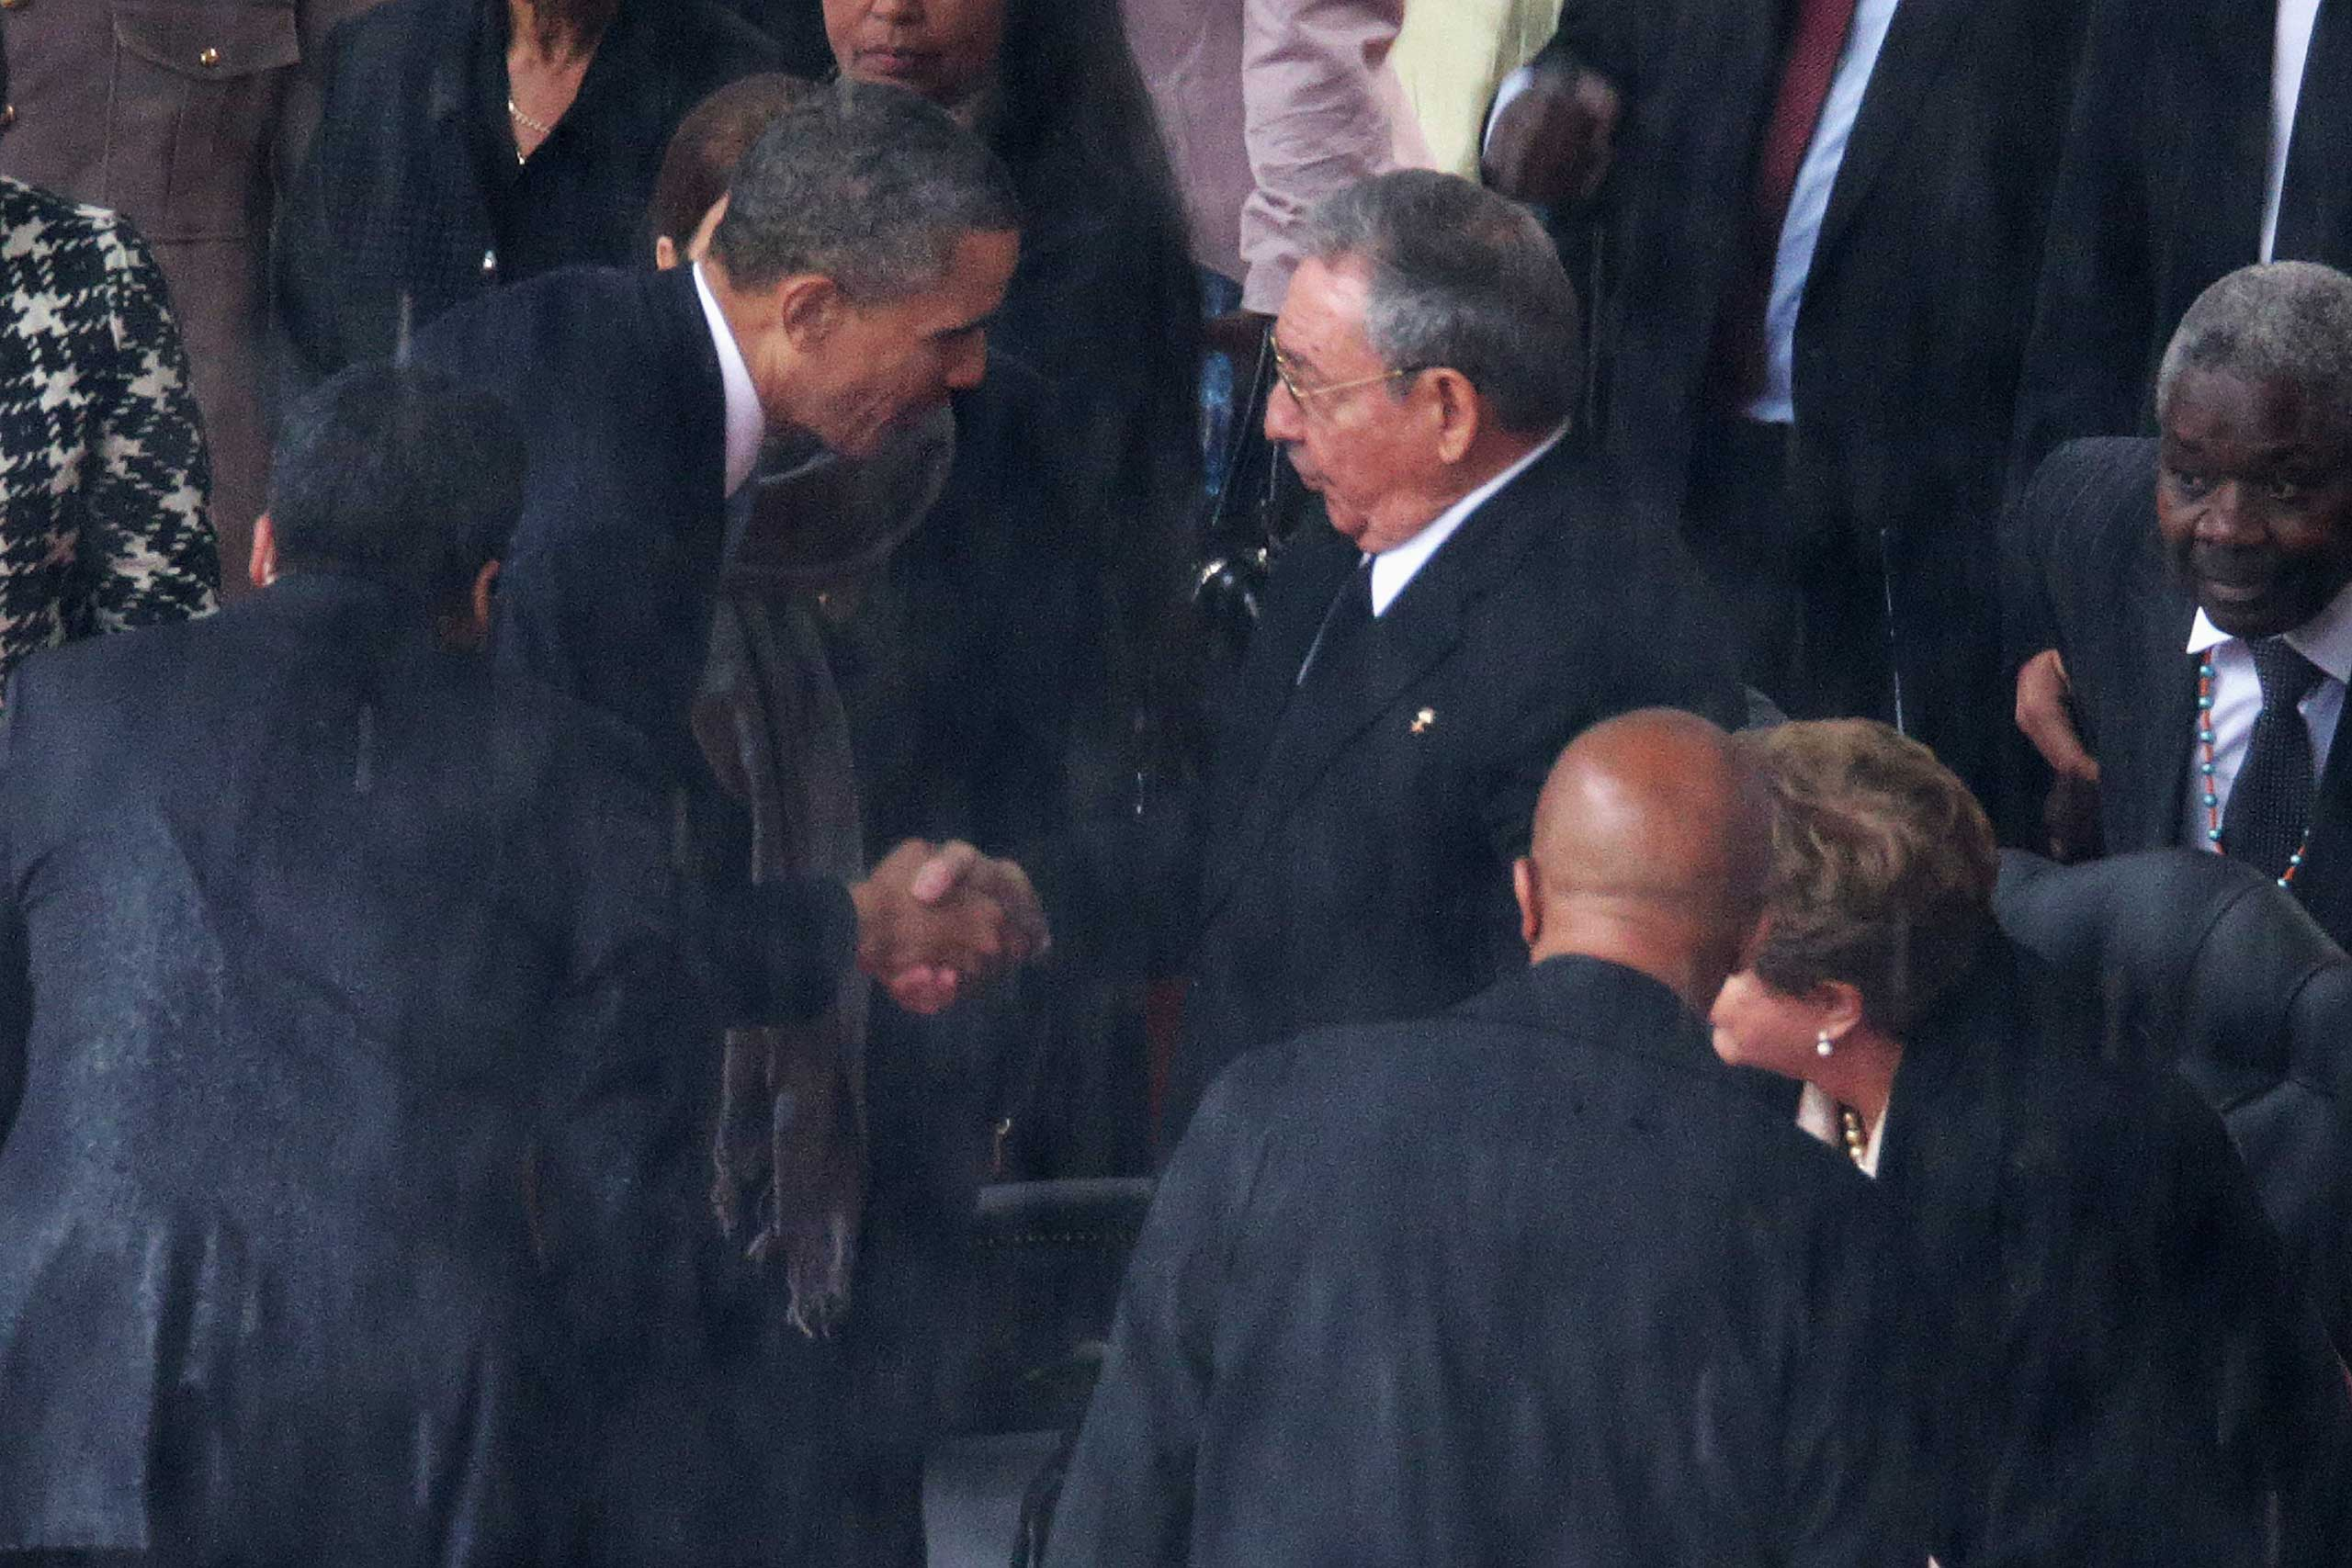 President Barack Obama shakes hands with Cuban President Raul Castro during the official memorial service for former South African President Nelson Mandela at FNB Stadium, Dec. 10, 2013 in Johannesburg, South Africa.